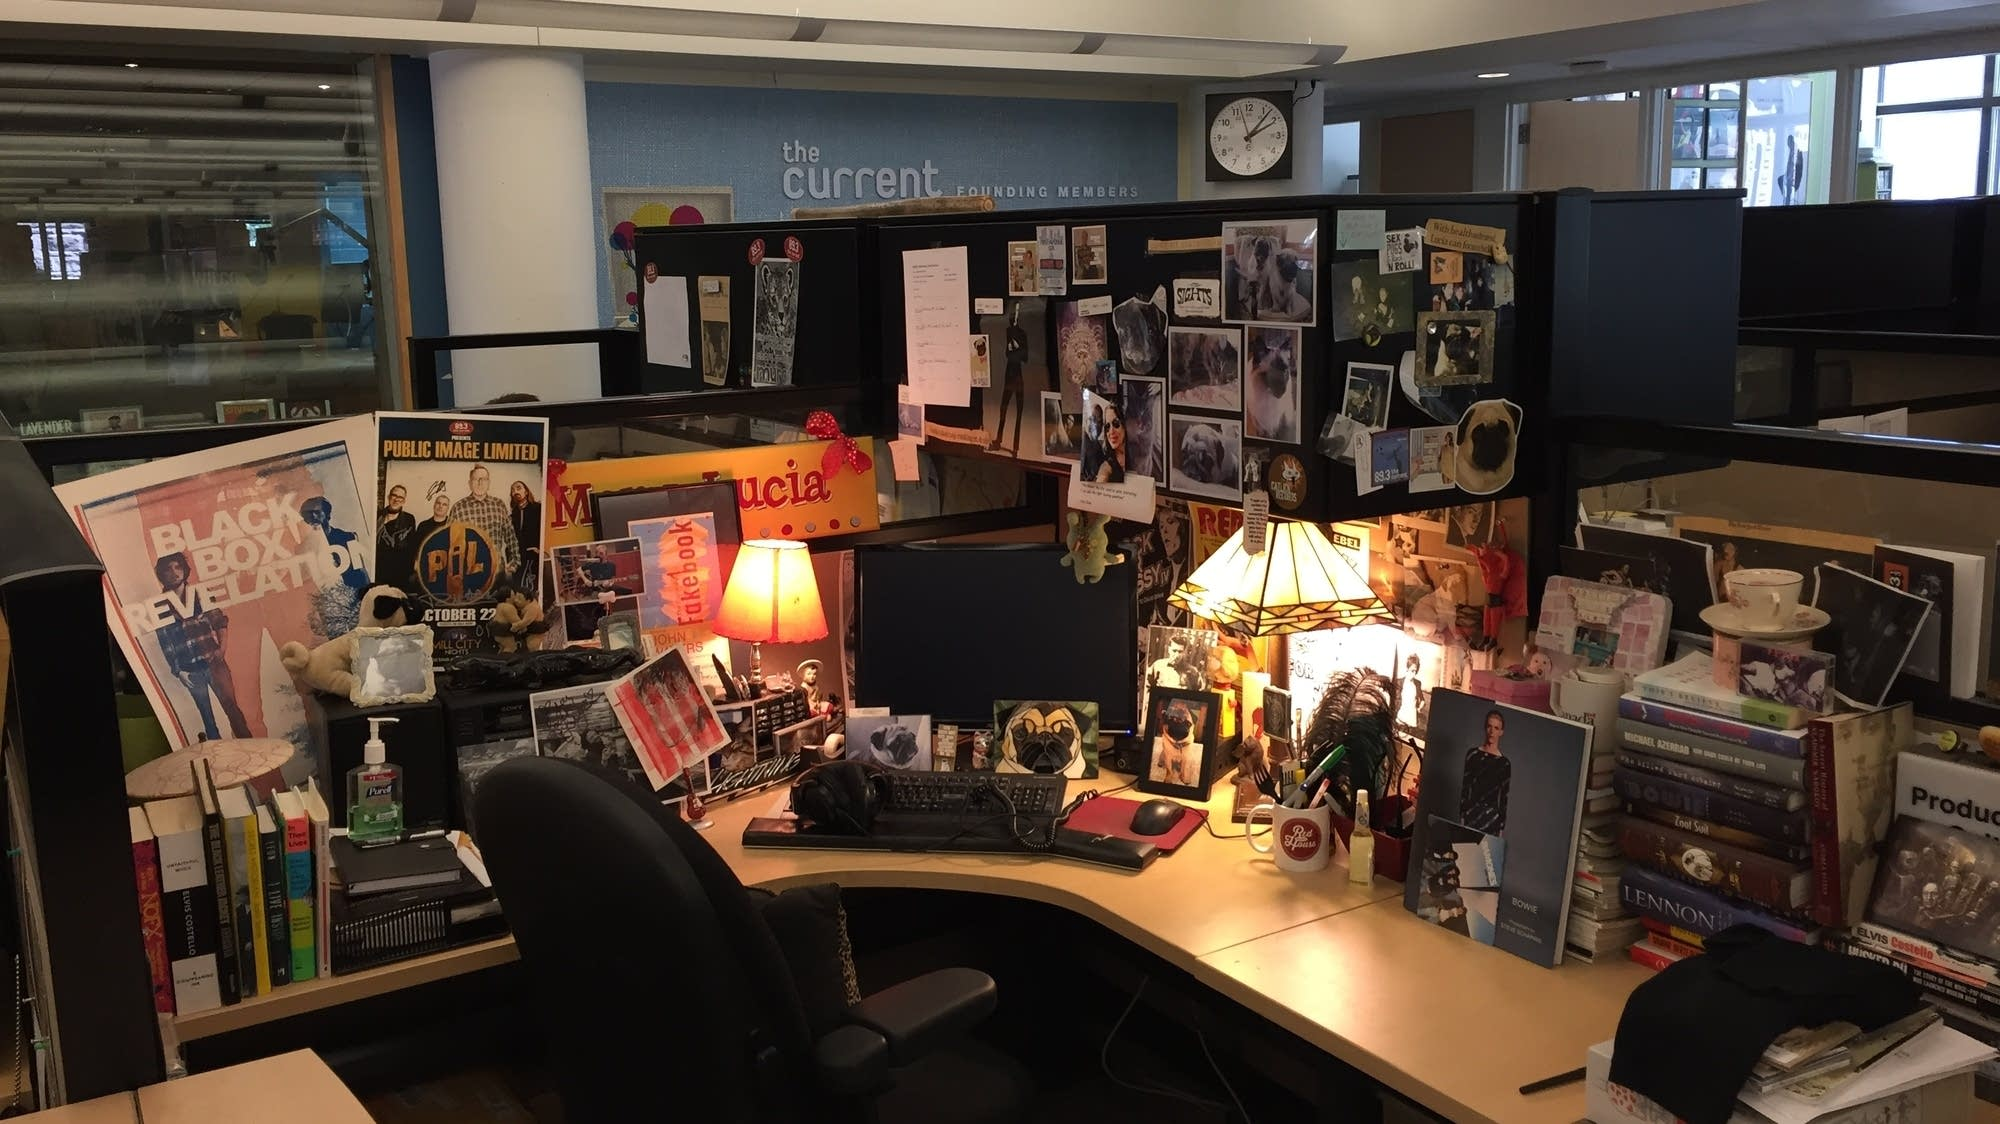 Mary Lucia's desk at The Current